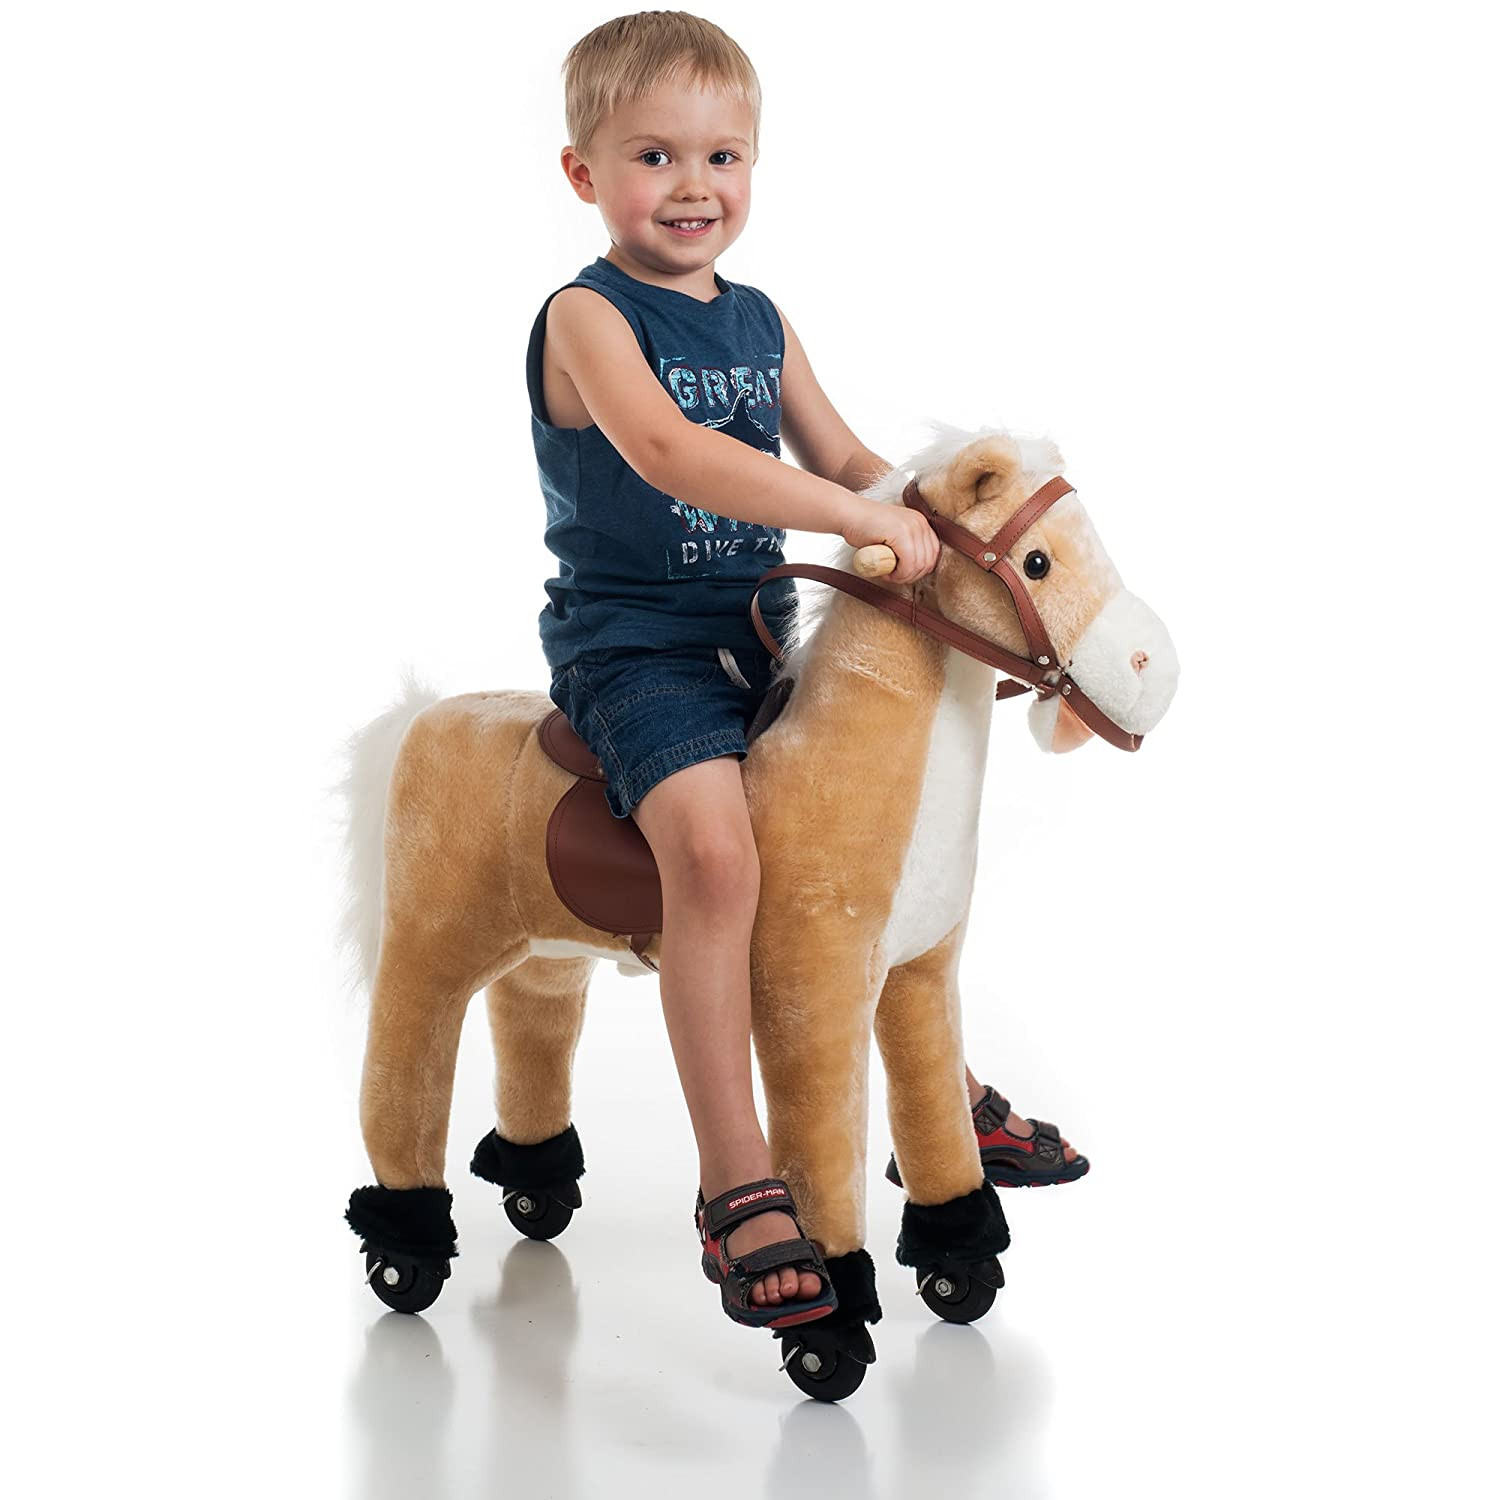 Happy Trails Plush Walking Horse with Wheels and Foot Rest 80-90WALK